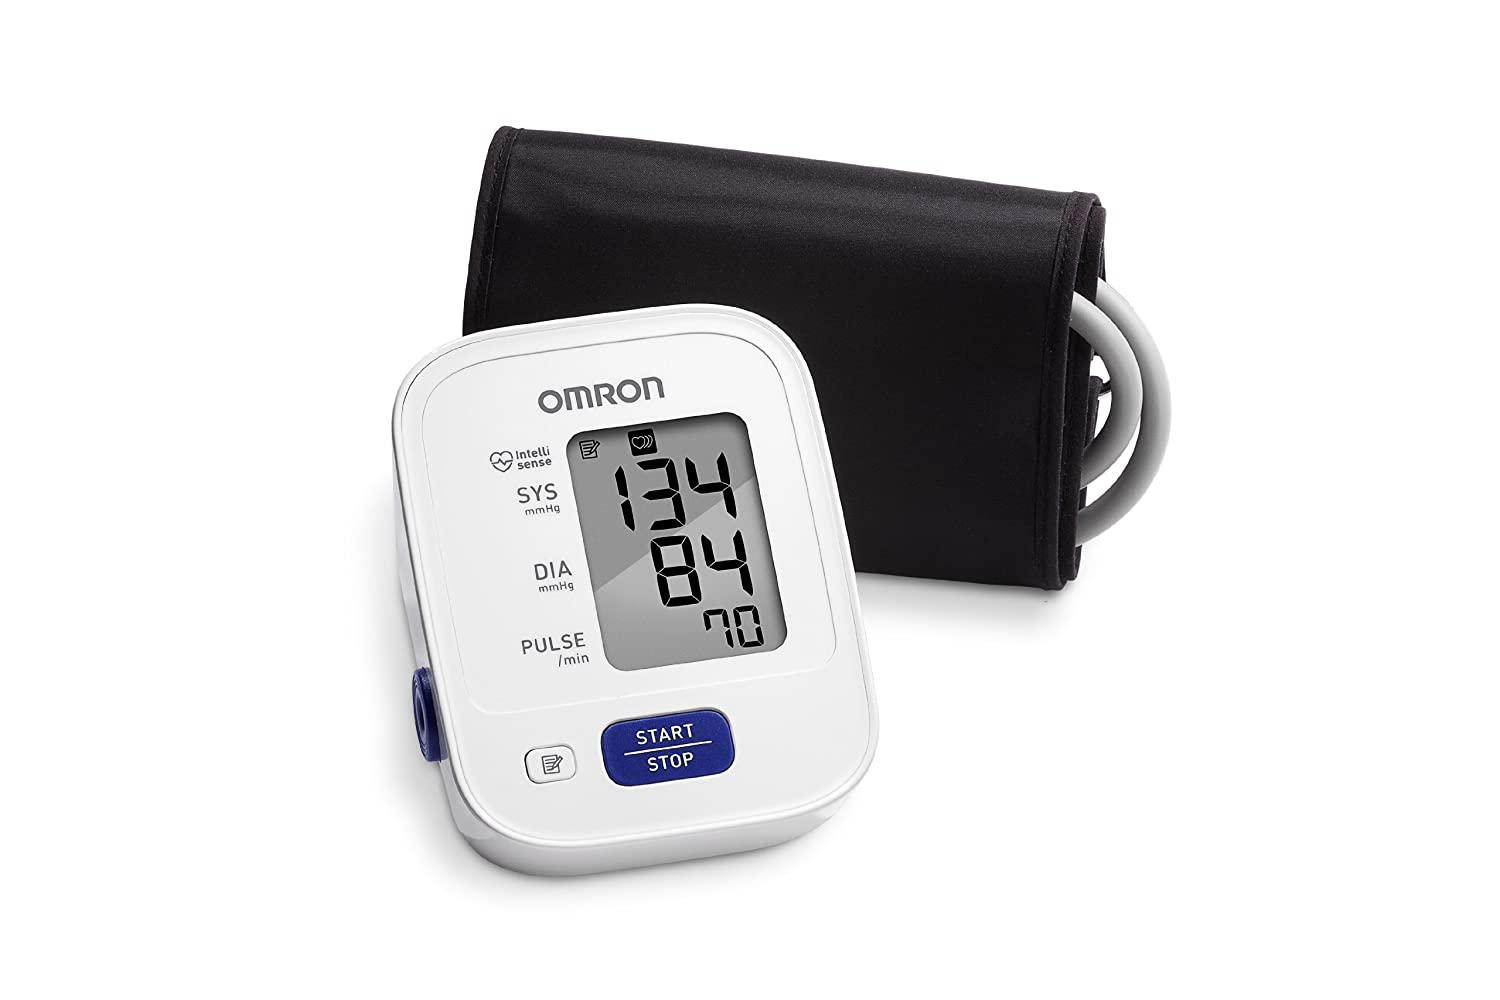 OMRON 3 Series Upper Arm Blood Pressure Monitor 14-Reading Memory, Soft Wide-range Cuff, 1 Dr. Recommended By OMRON